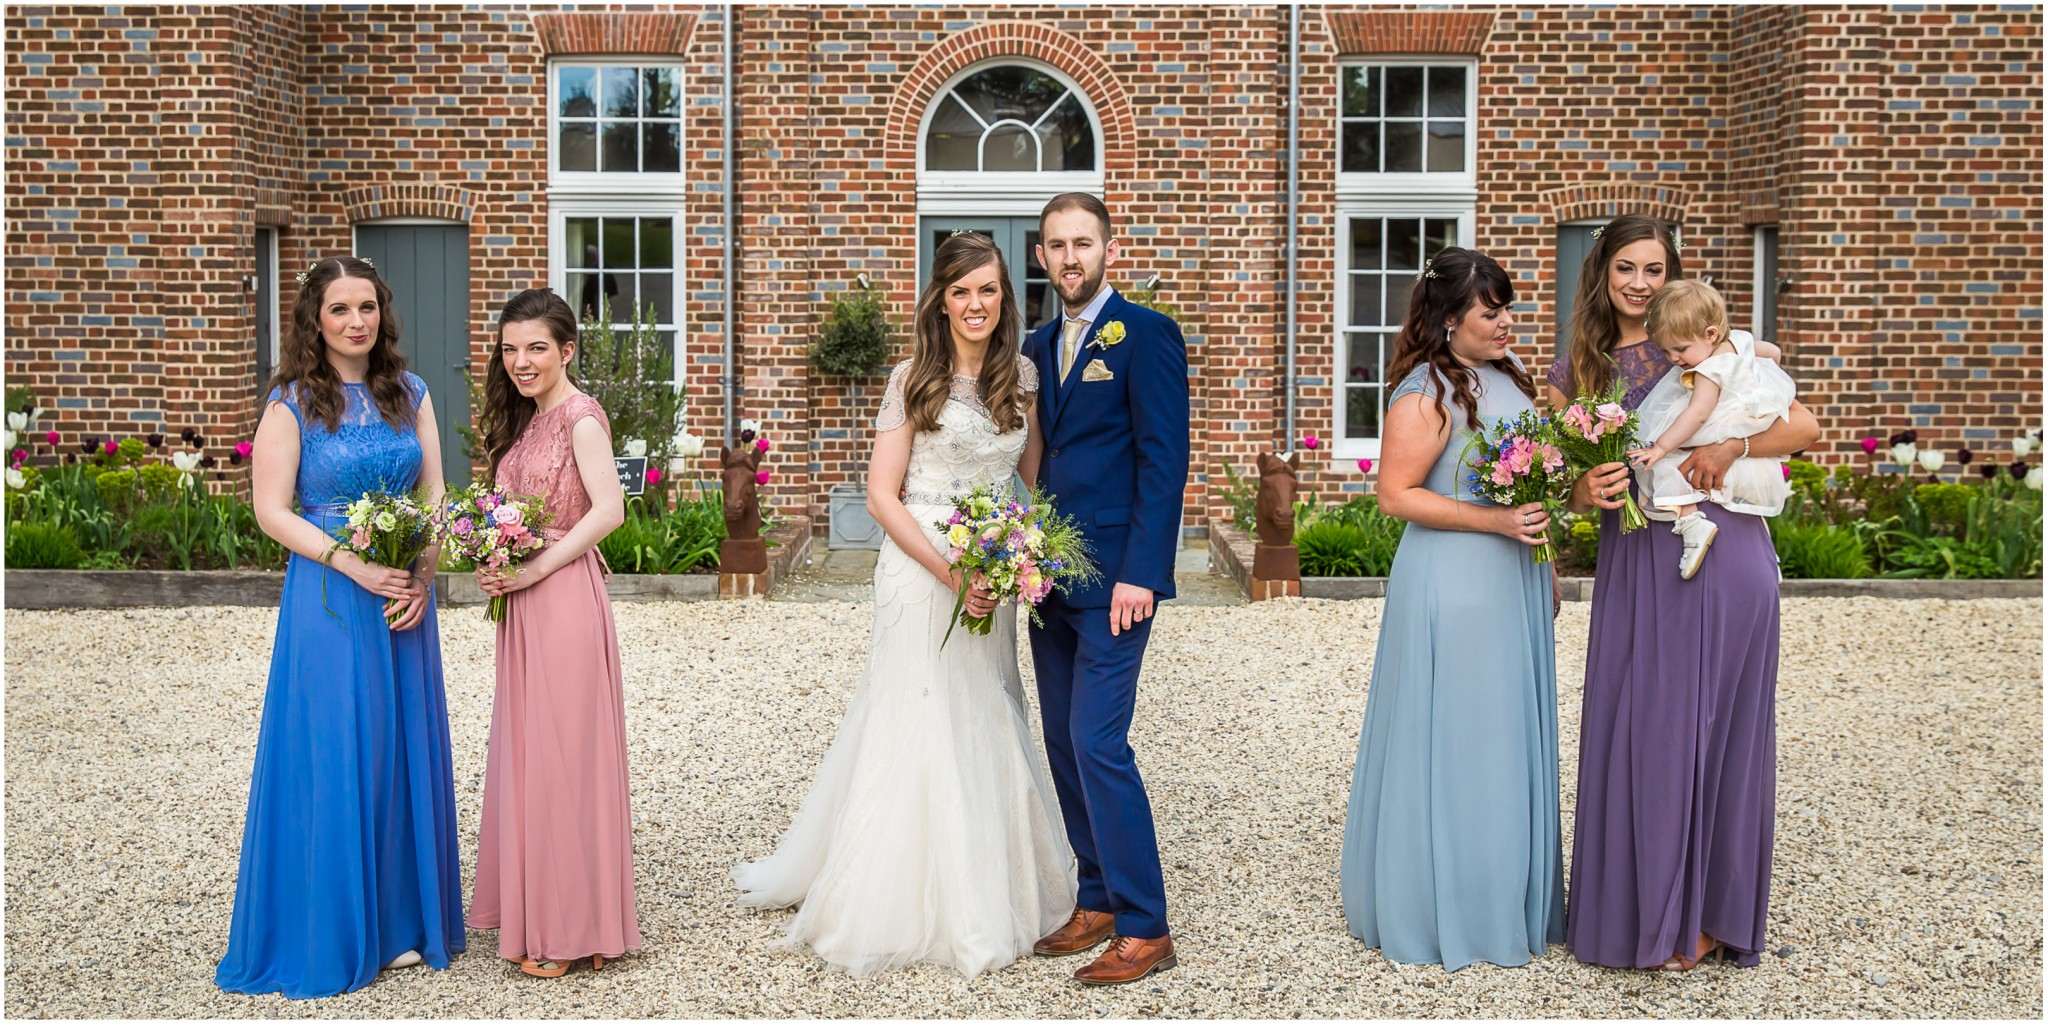 Wasing Park Wedding Photography Bride & Groom with bridesmaids